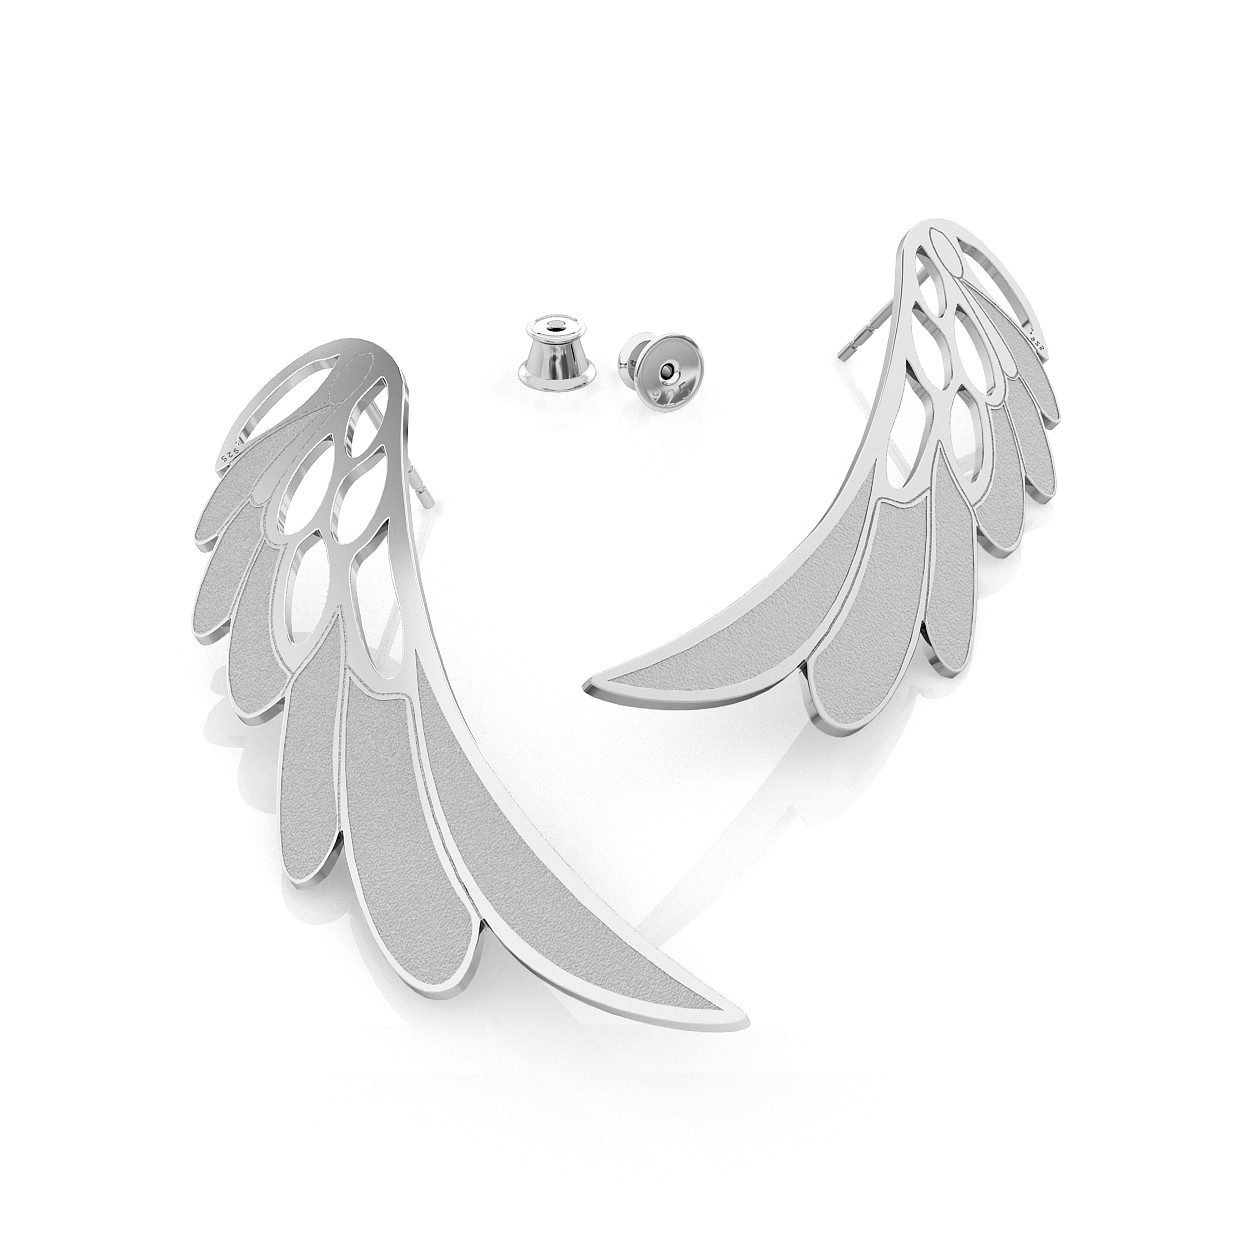 BIG ANGEL WINGS MATT EARRINGS, STERLING SILVER (925) RHODIUM OR GOLD PLATED